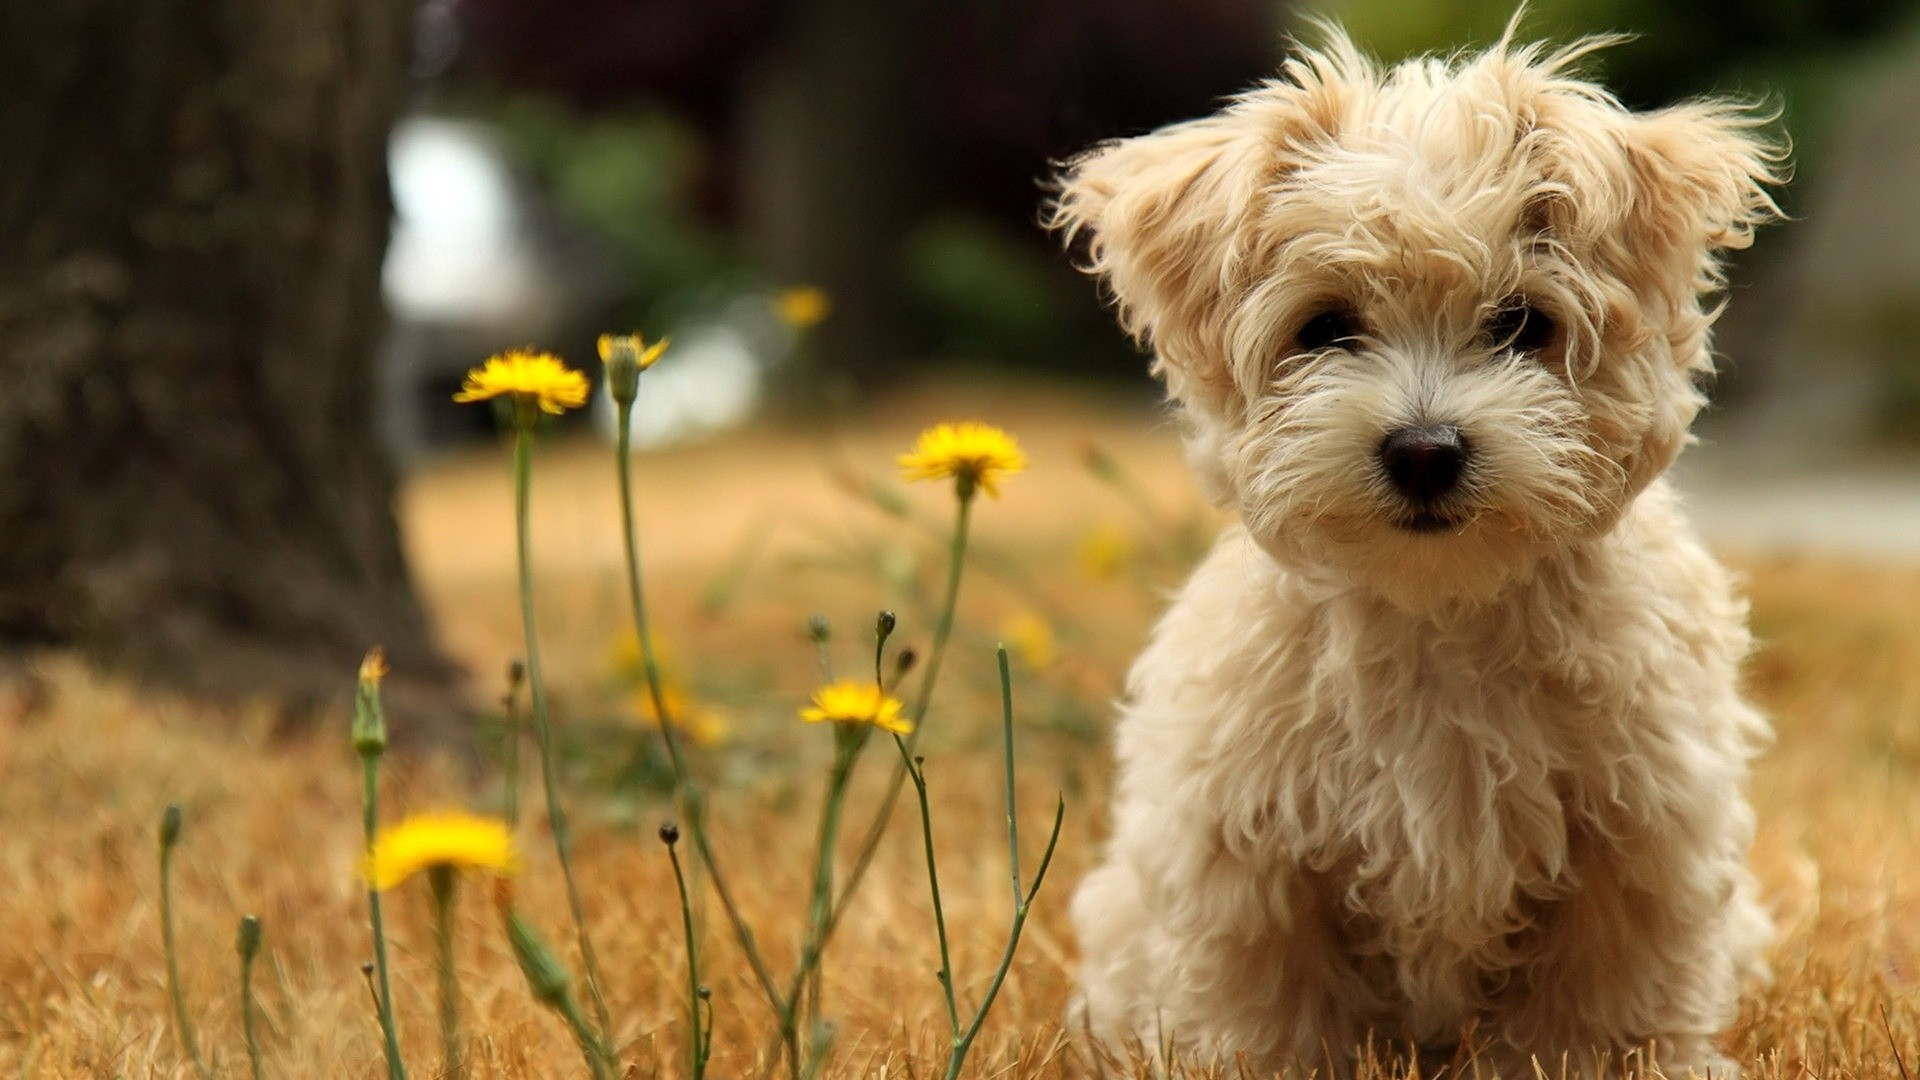 Dog desktop backgrounds hd voltagebd Choice Image